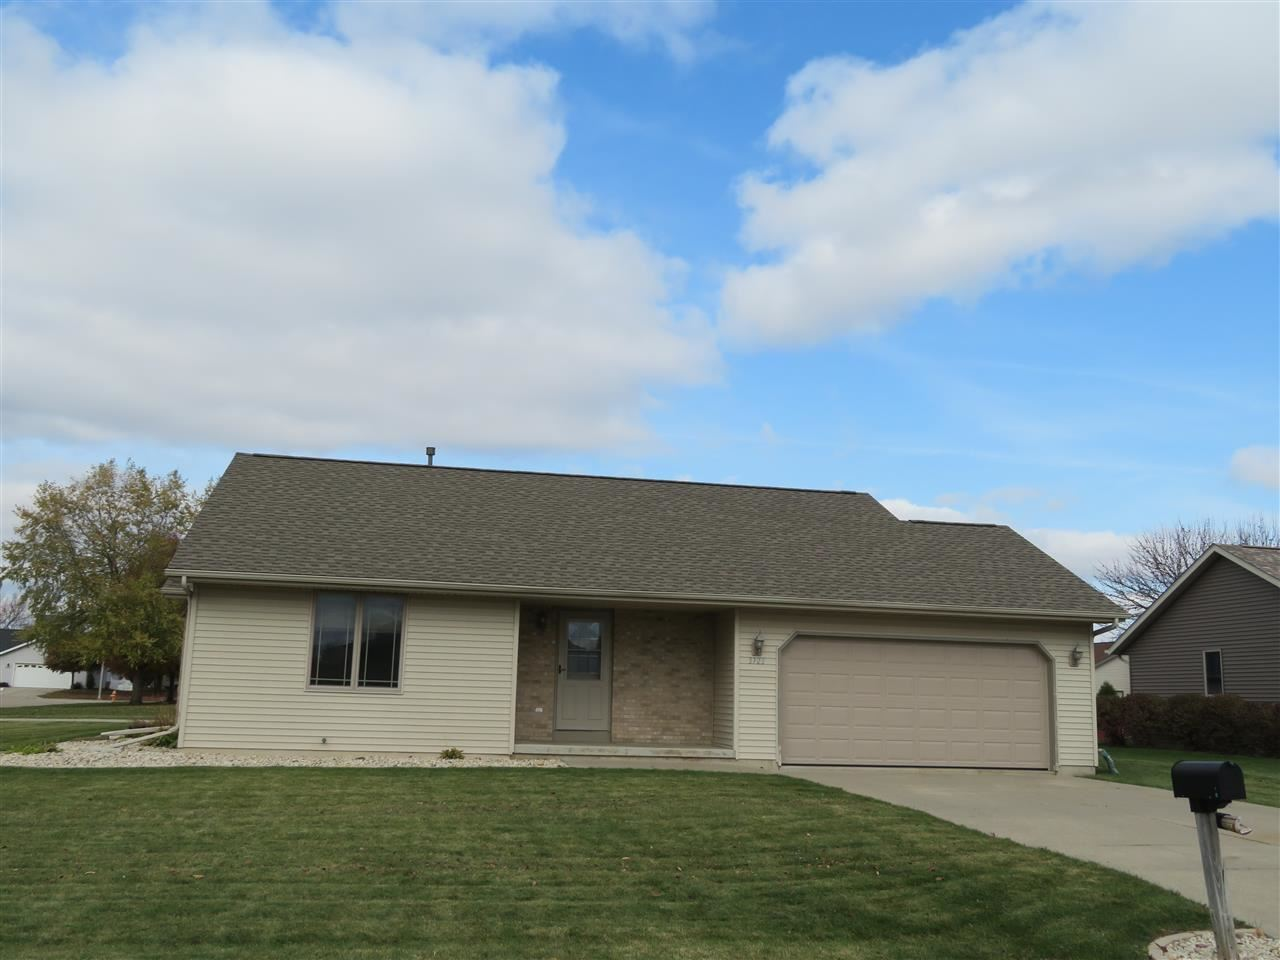 3703 Wintergreen Way, Janesville, WI 53546 - #: 1896620